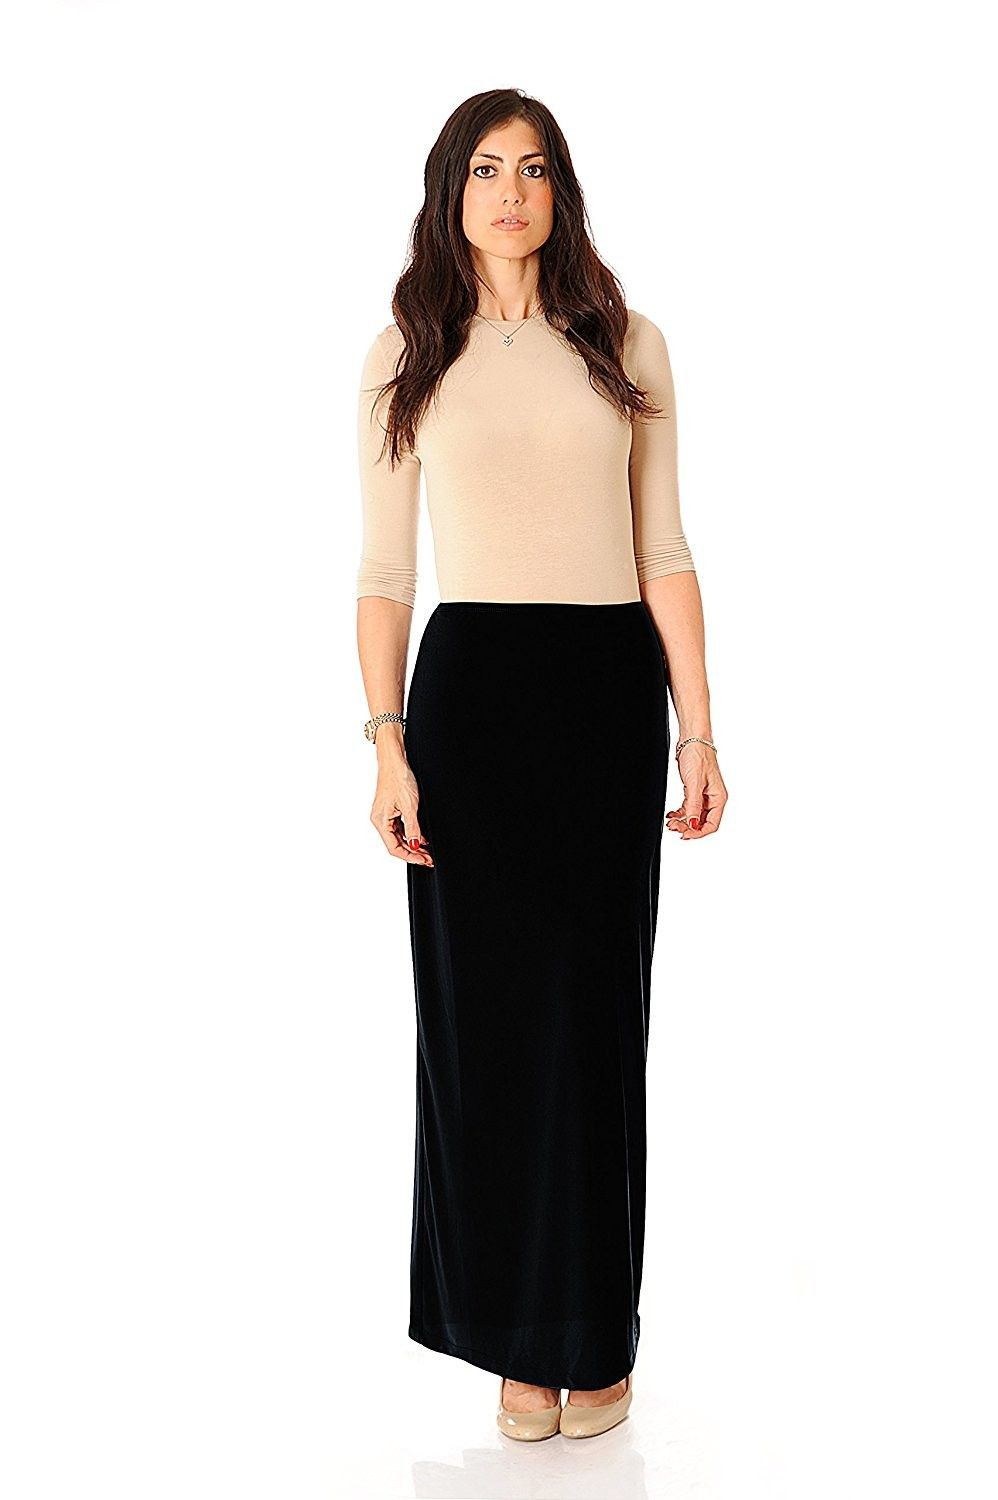 d9d612f7f4 ITY Modest Long Slinky Skirt - Black - CI12LHIR7SX,Women's Clothing, Skirts  #women #fashion #clothing #style #sexy #outfits #Skirts